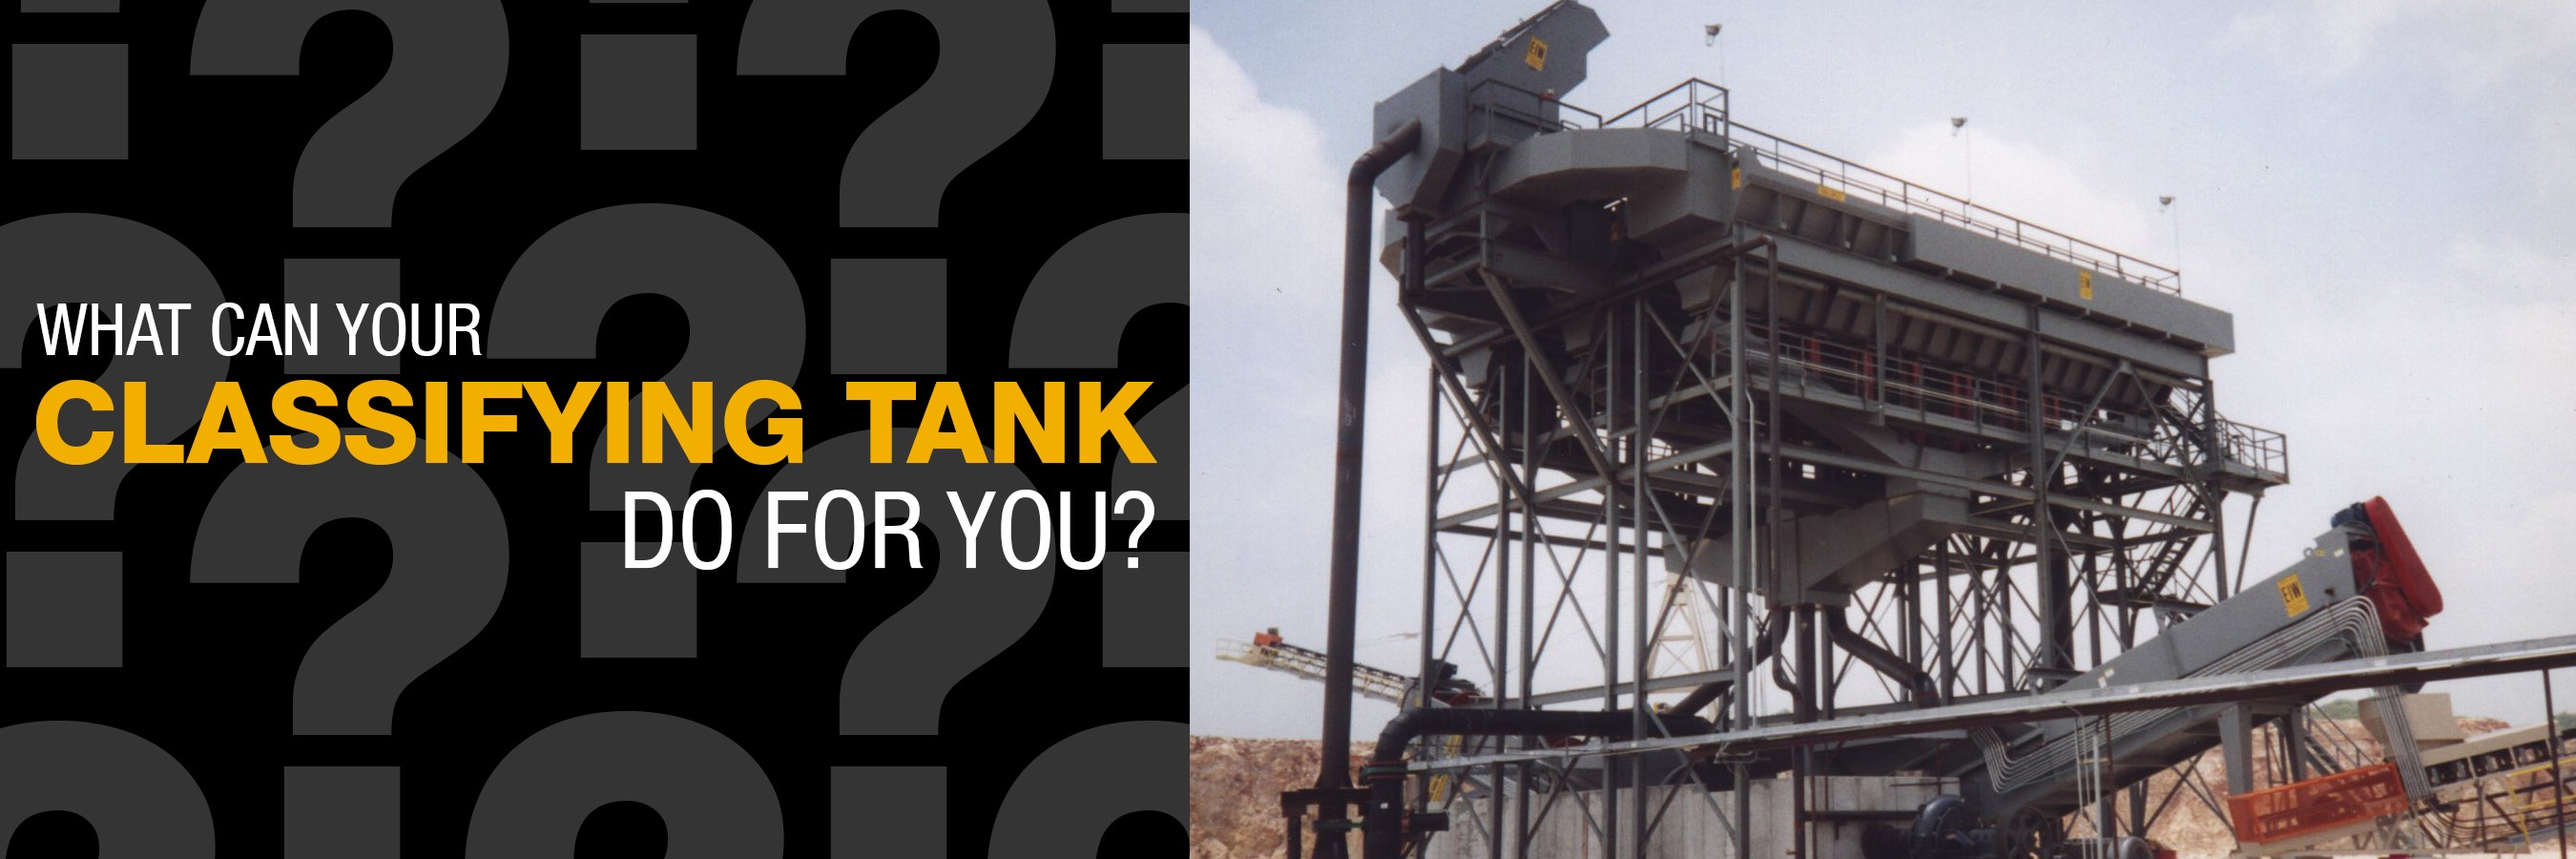 what can your classifying tank do for you